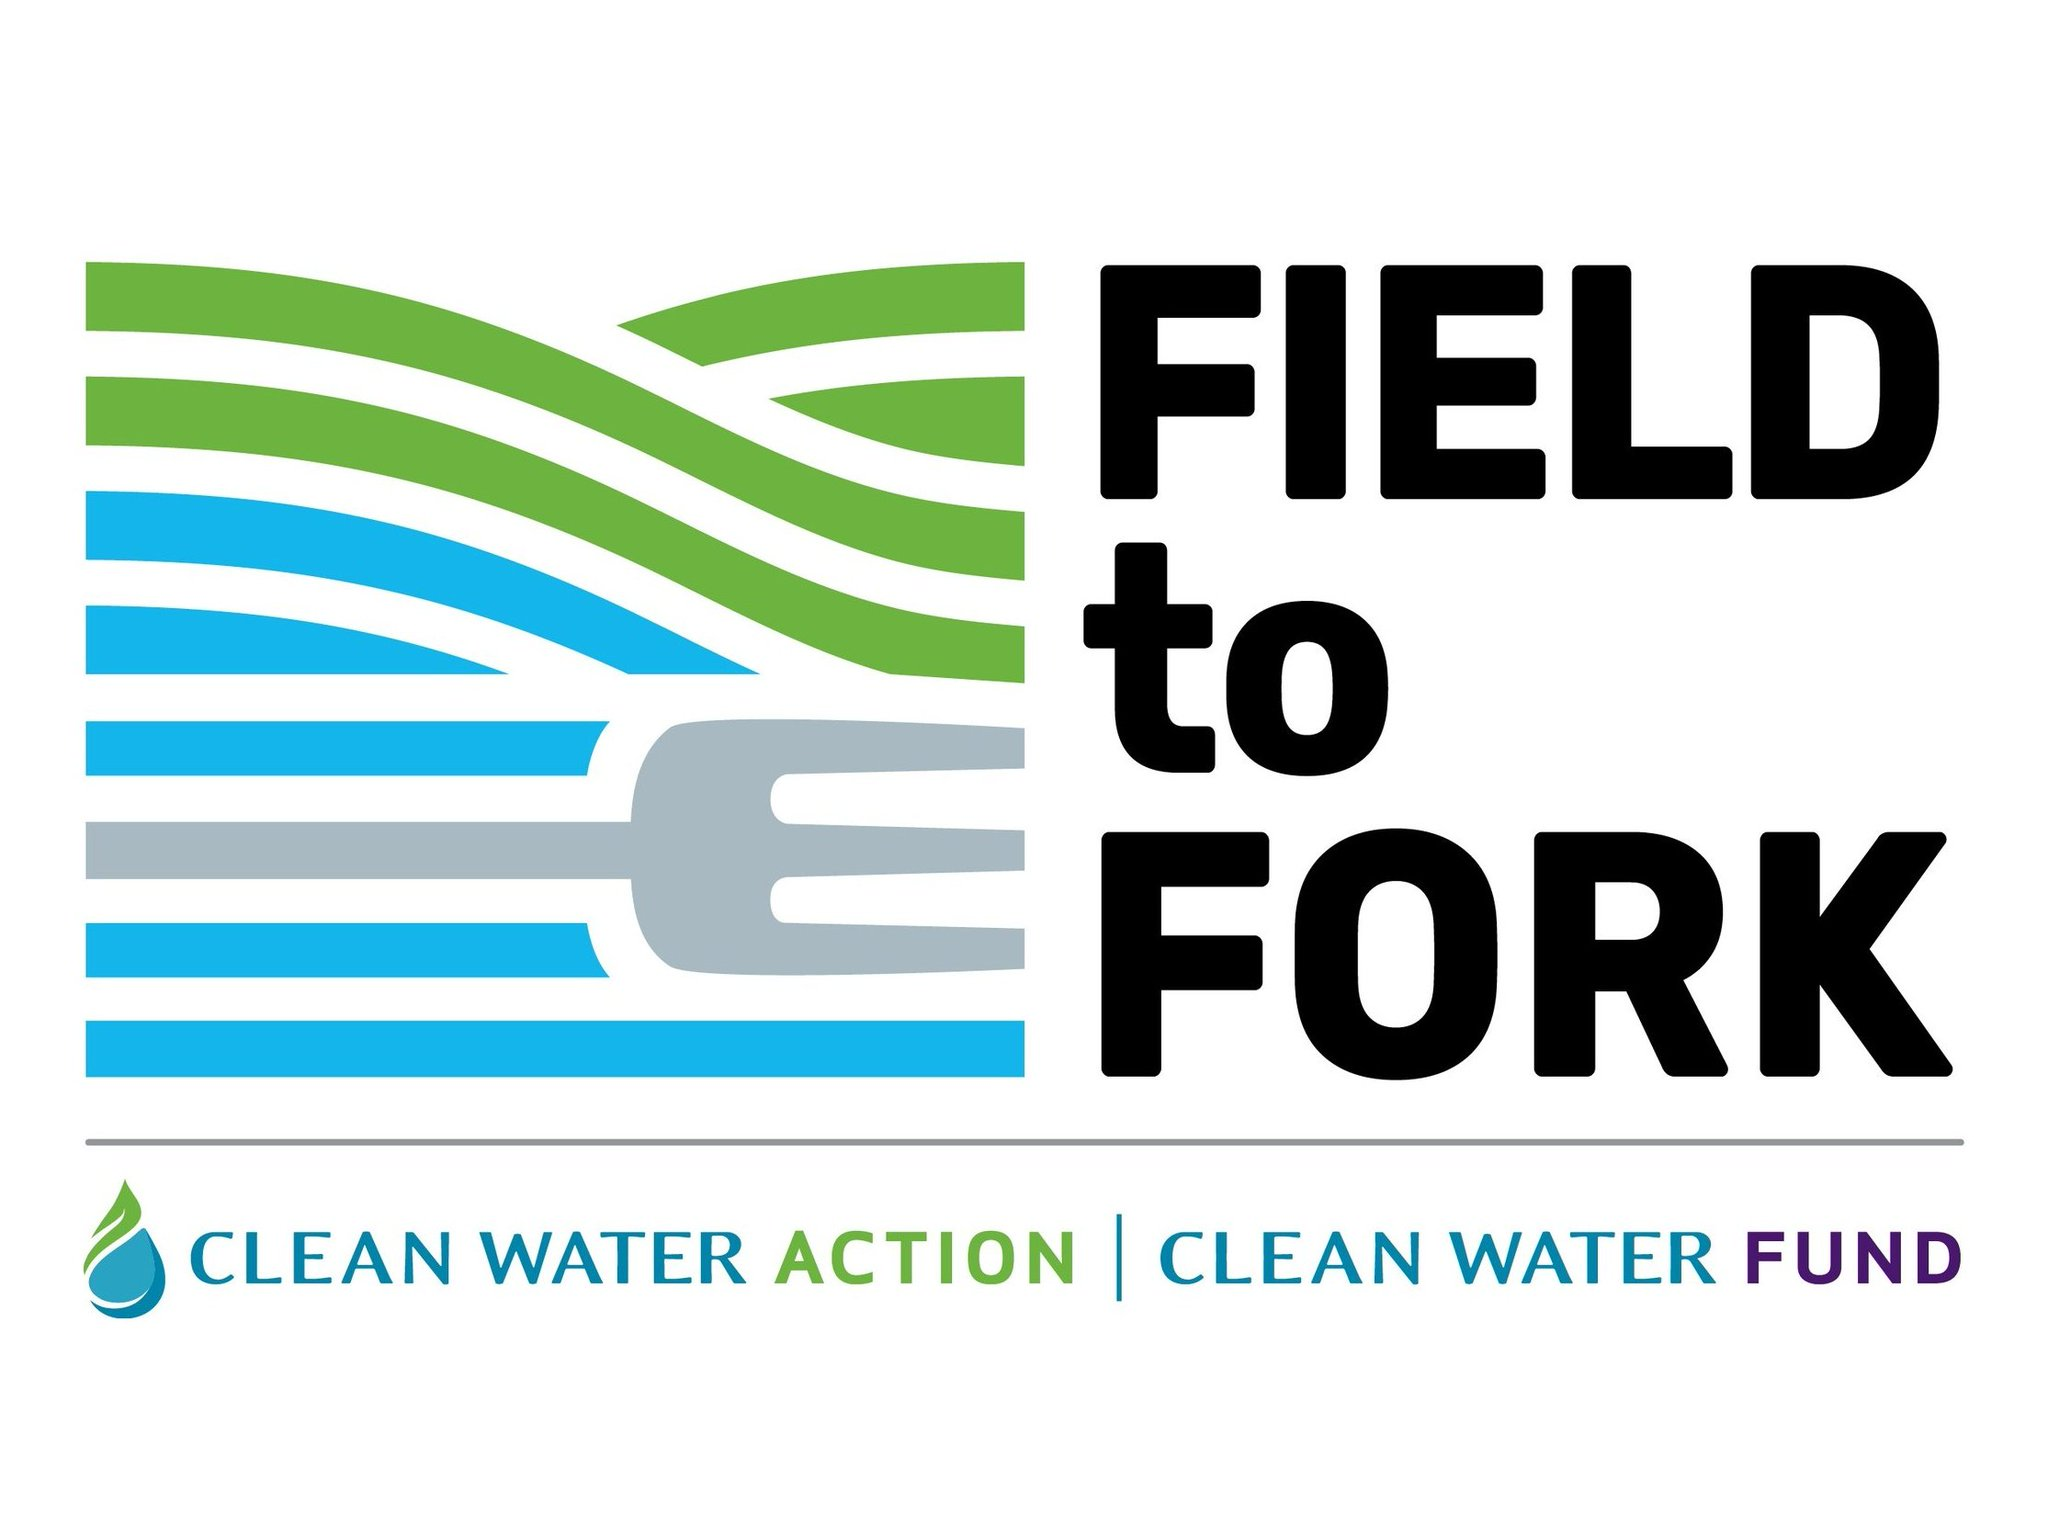 Field to Fork campaign logo from Clean Water Action and Clean Water Fund